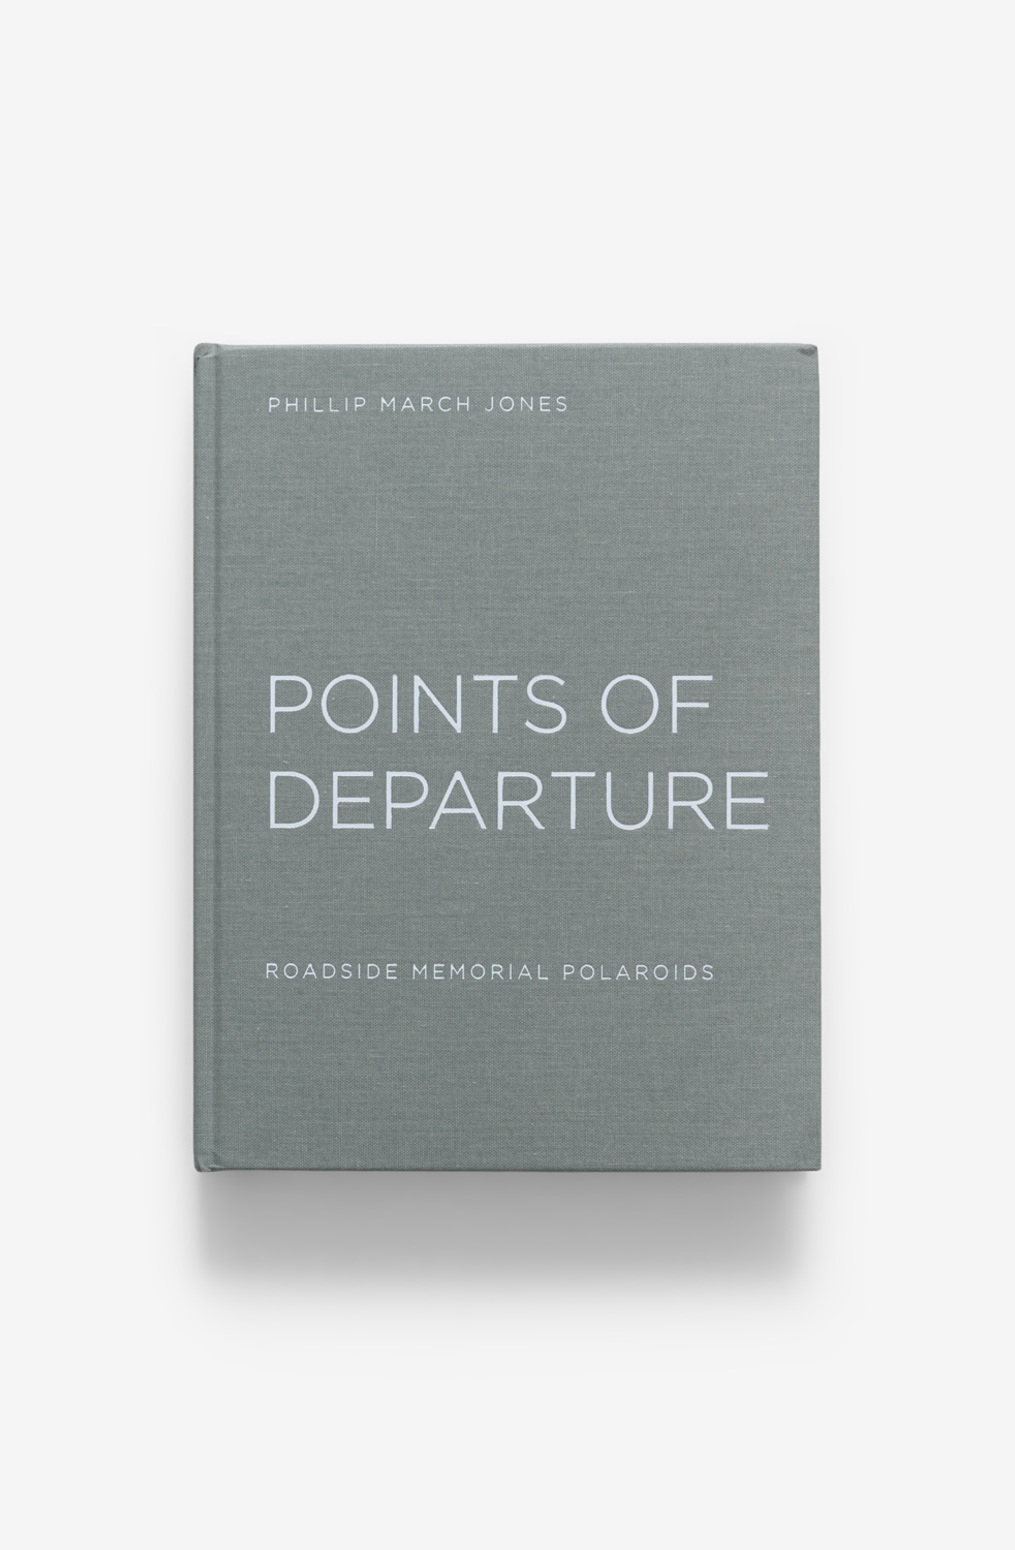 The school of making points of departure 3